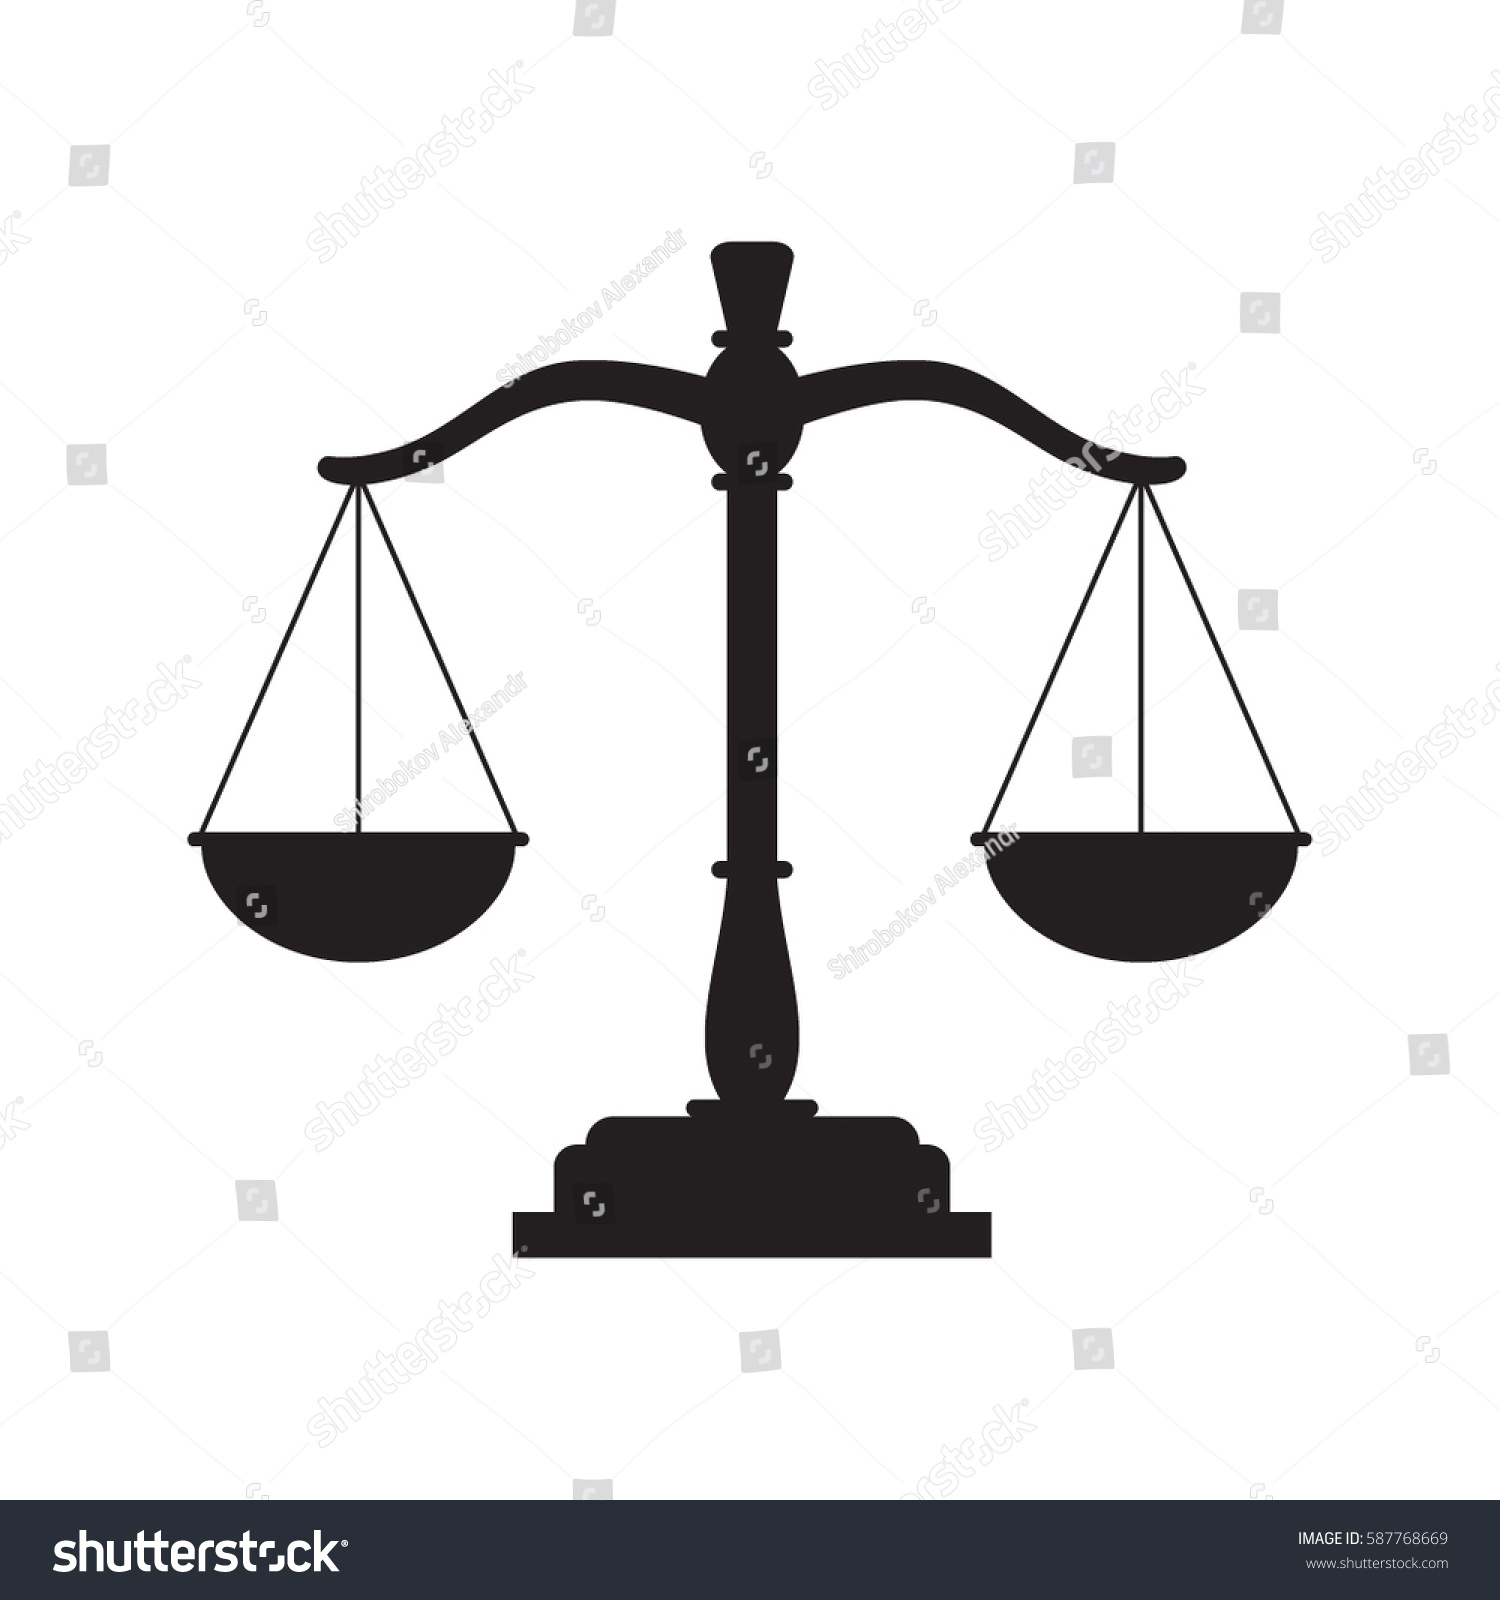 Black justice scales icon law balance stock vector 587768669 black justice scales icon law balance symbol libra in flat design vector illustration biocorpaavc Choice Image